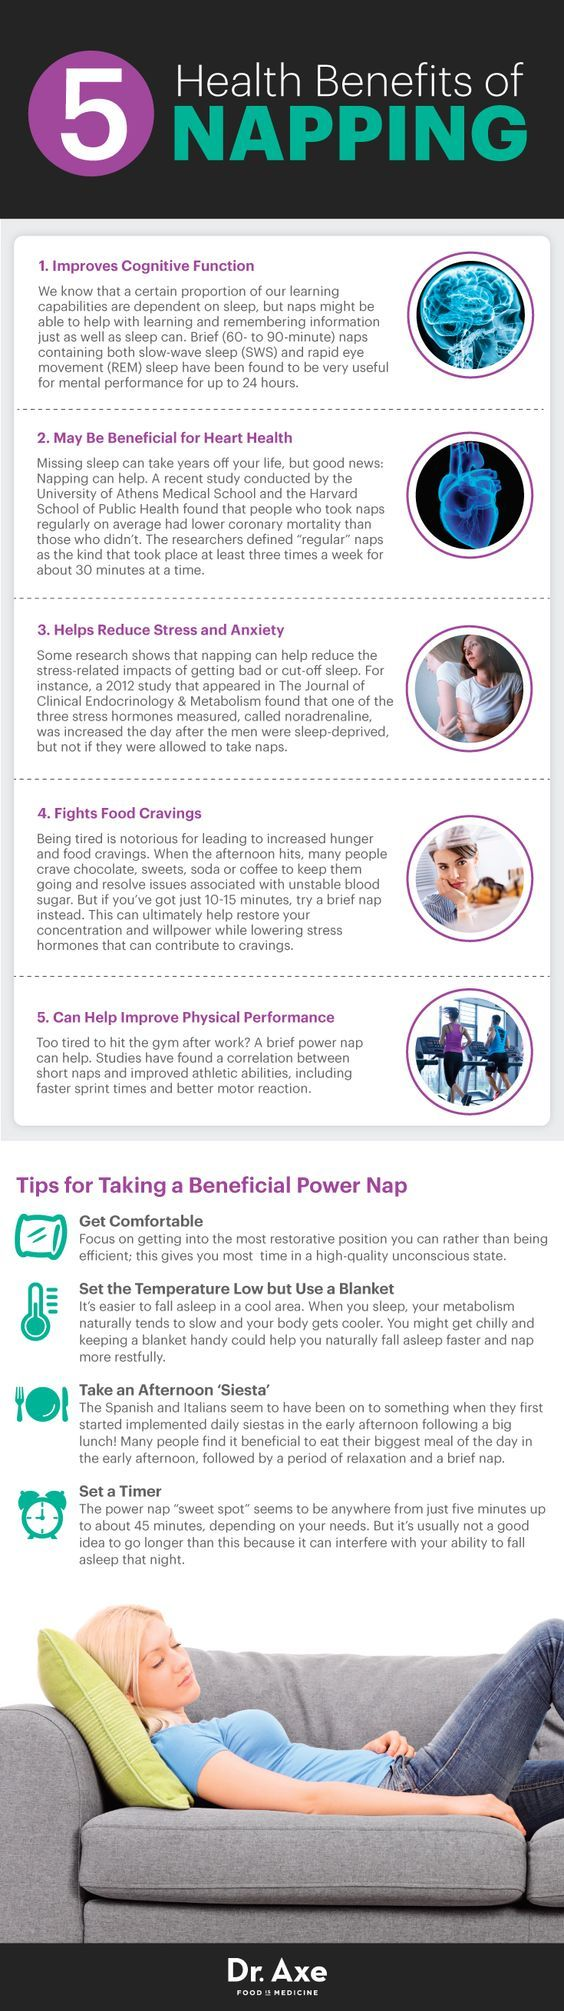 Benefits of power nap - Dr. Axe http://www.draxe.com #health #holistic #natural